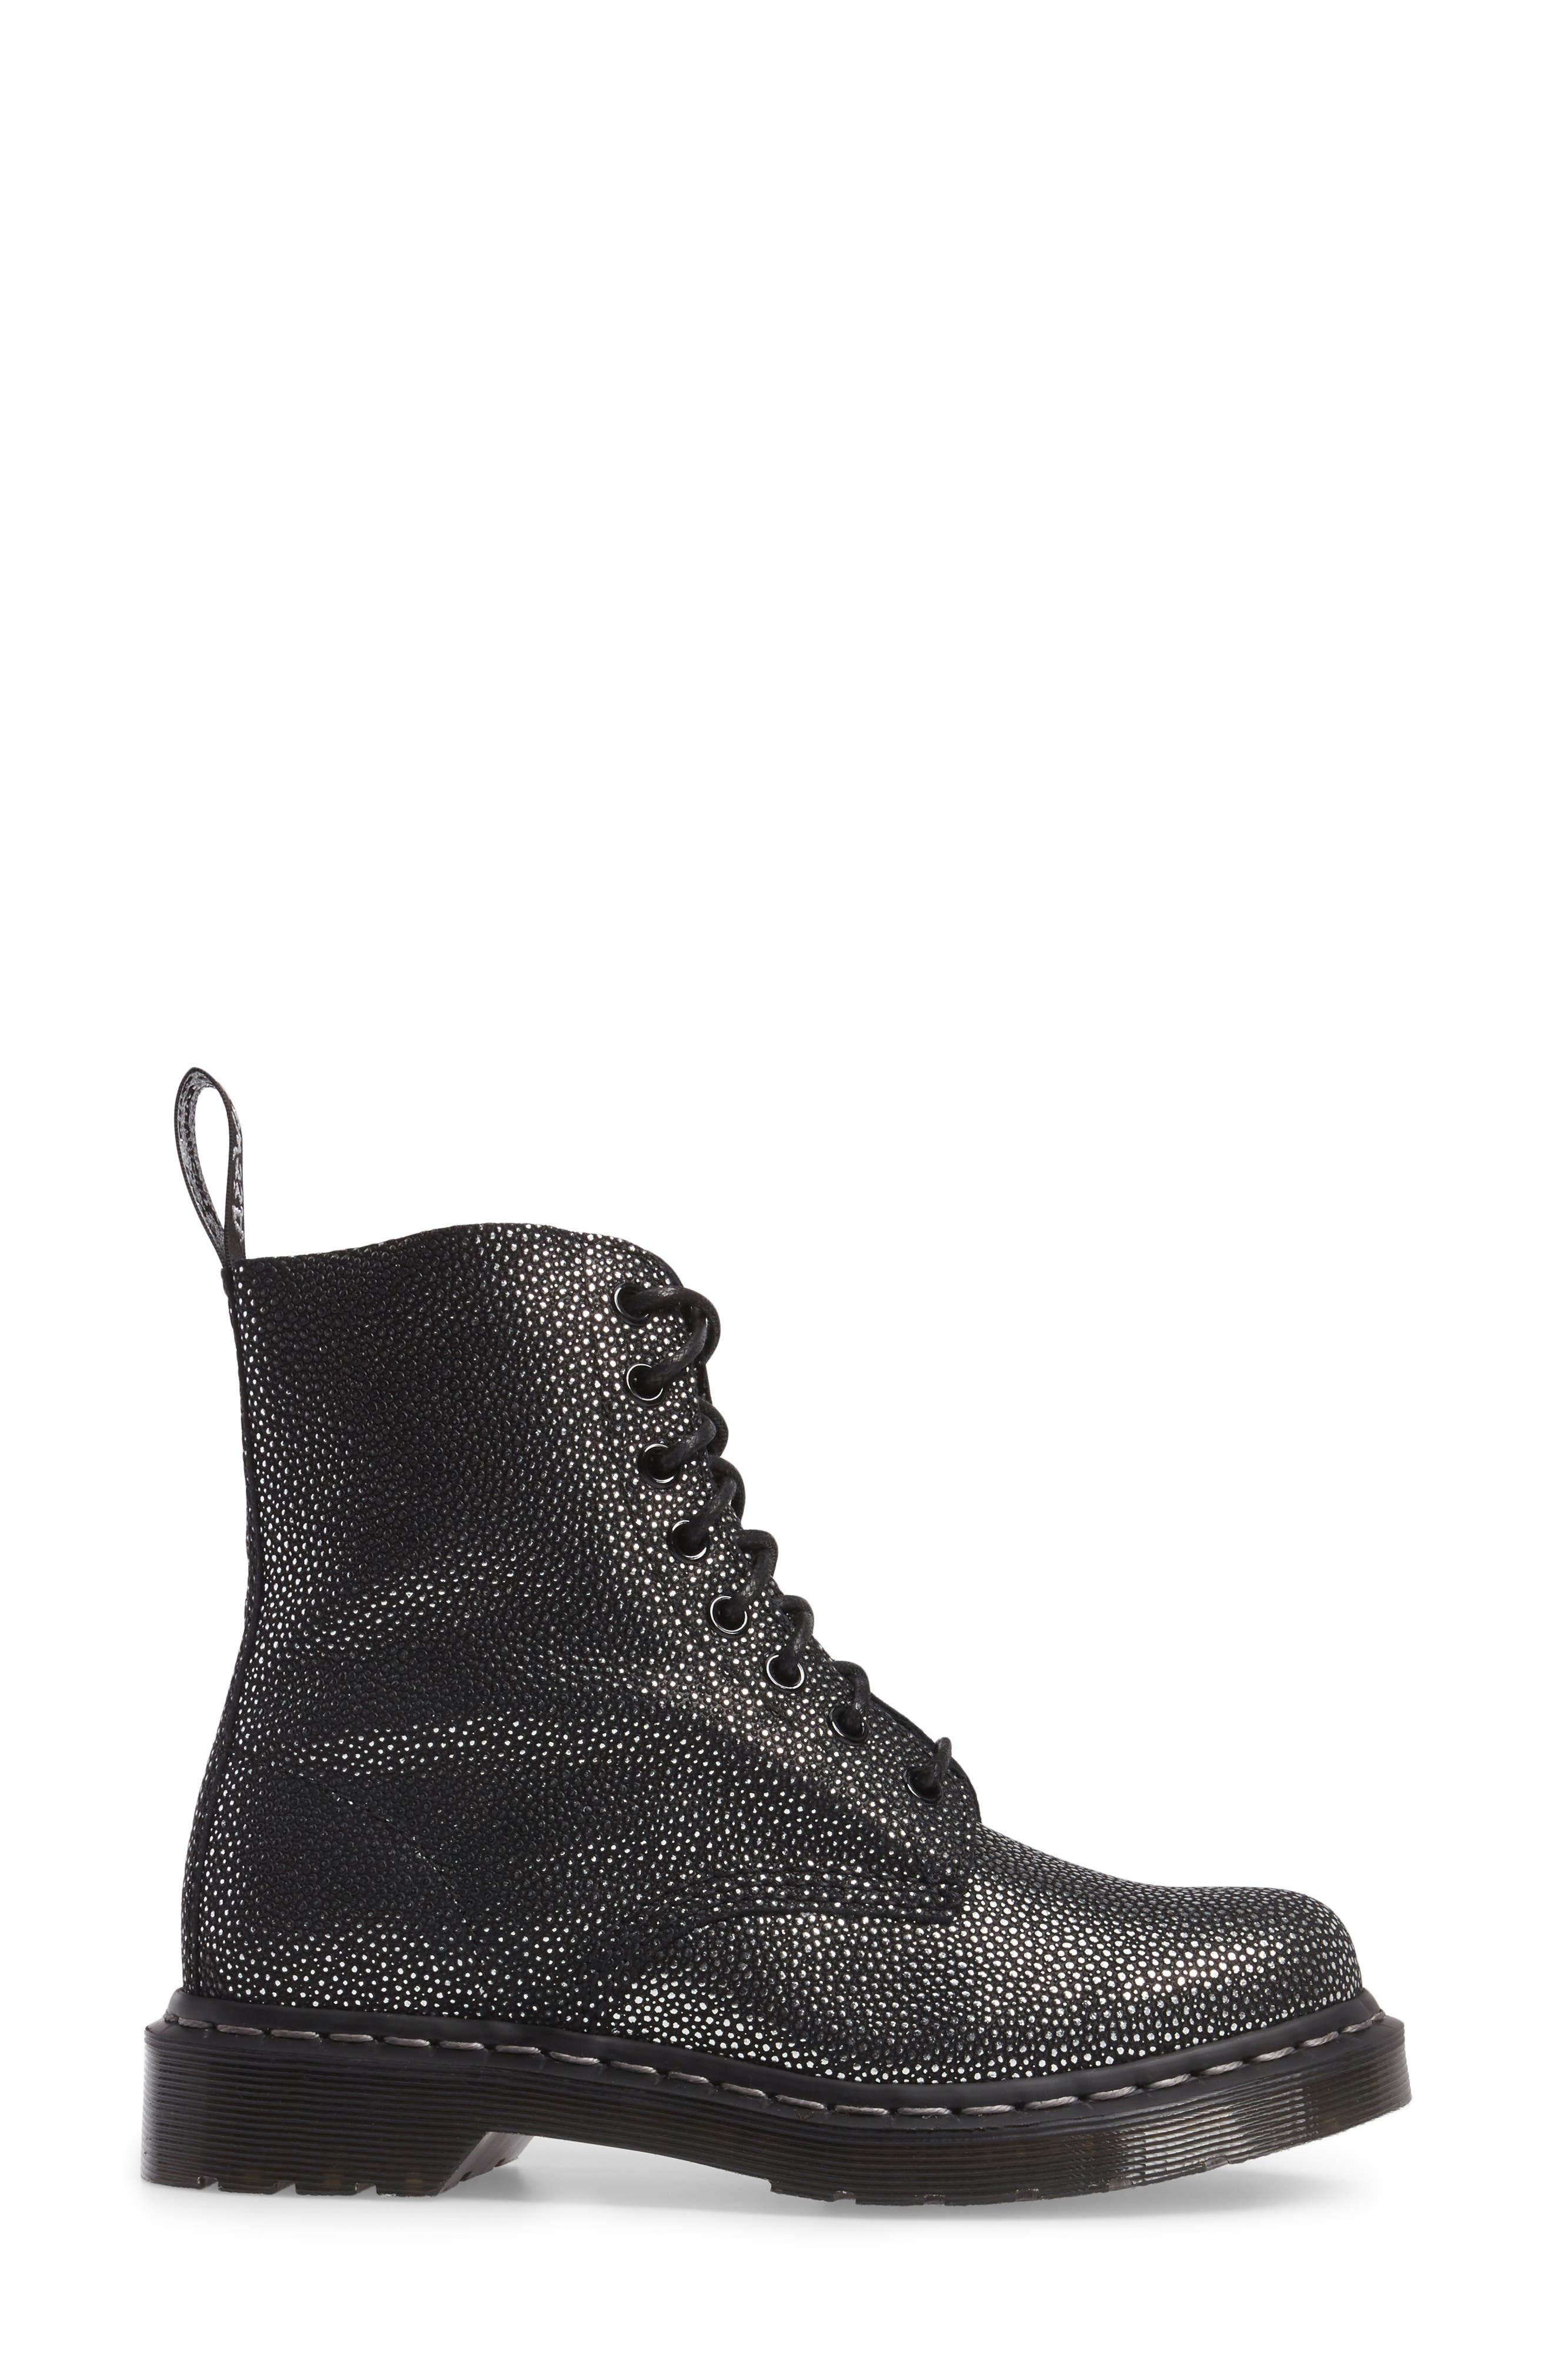 Alternate Image 3  - Dr. Martens 1460 Boot (Women)